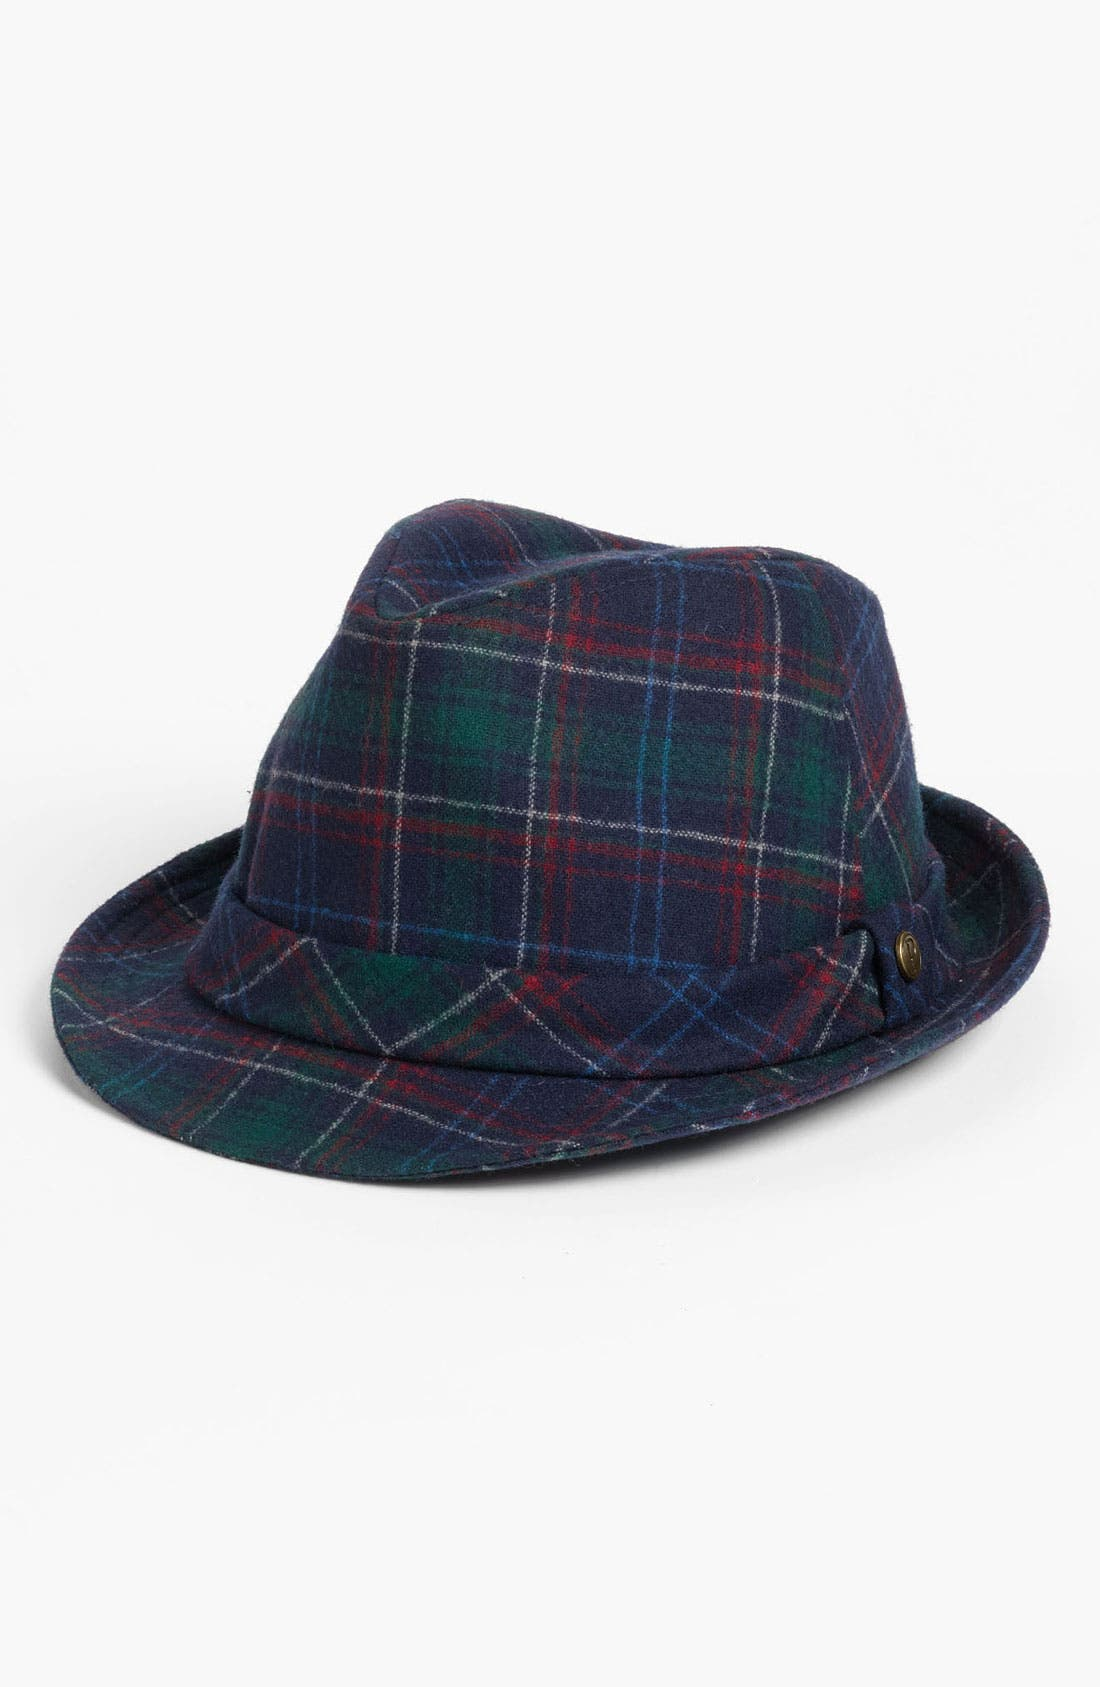 Alternate Image 1 Selected - Pendleton 'Eastside' Fedora